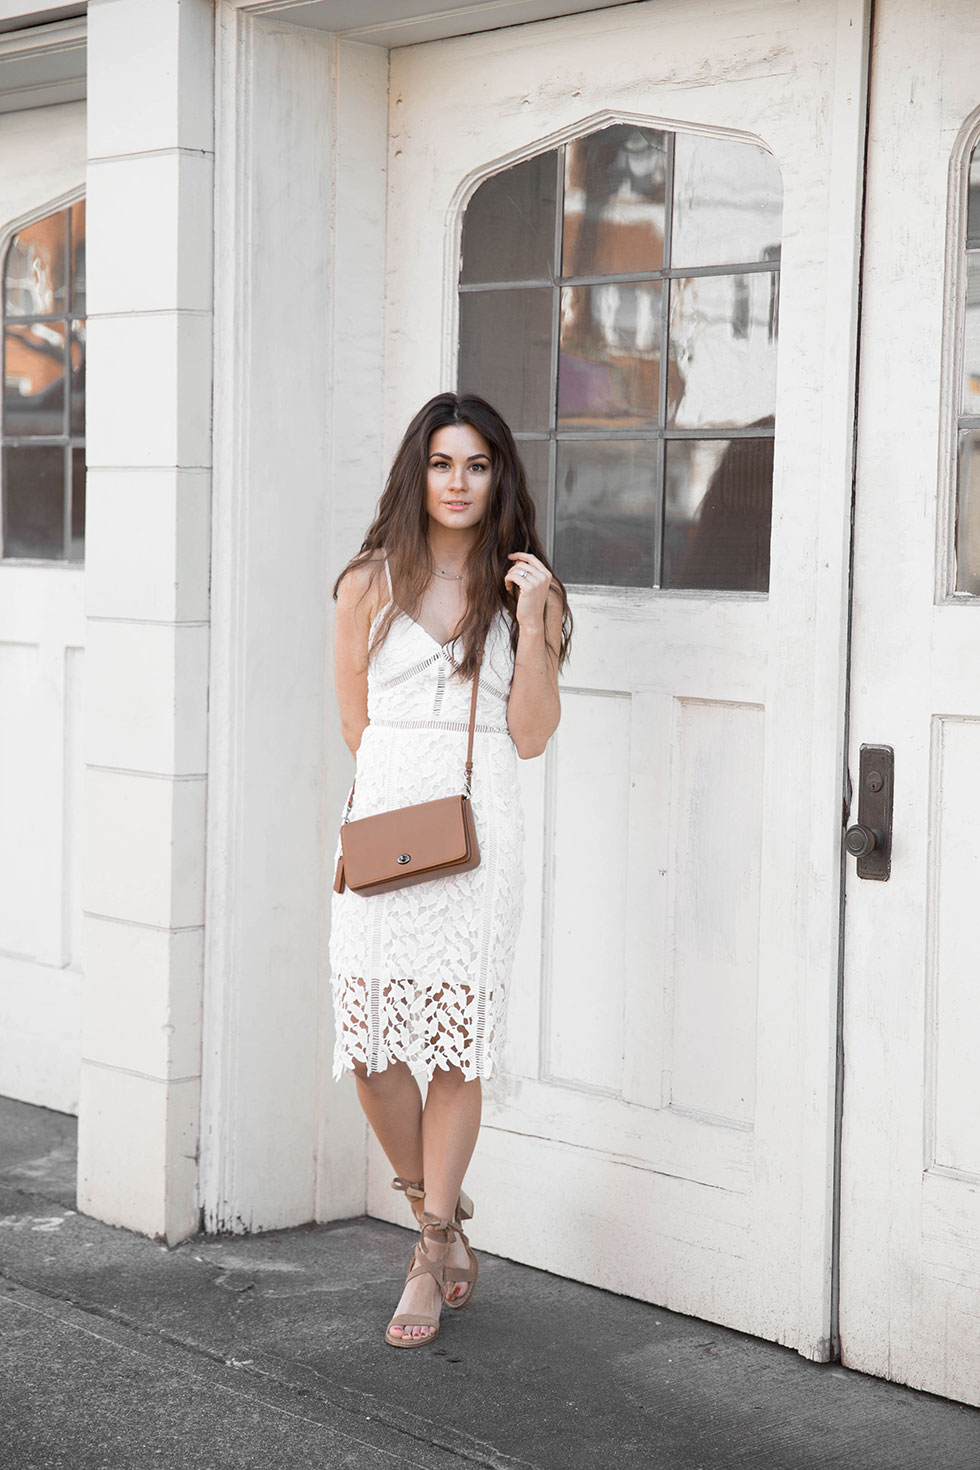 White Lace Midi Dress, Coach Dinky Crossbody in Glovetanned Leather, Chinese Laundry Wraparound Ankle Strap Sandal Spring Outfit